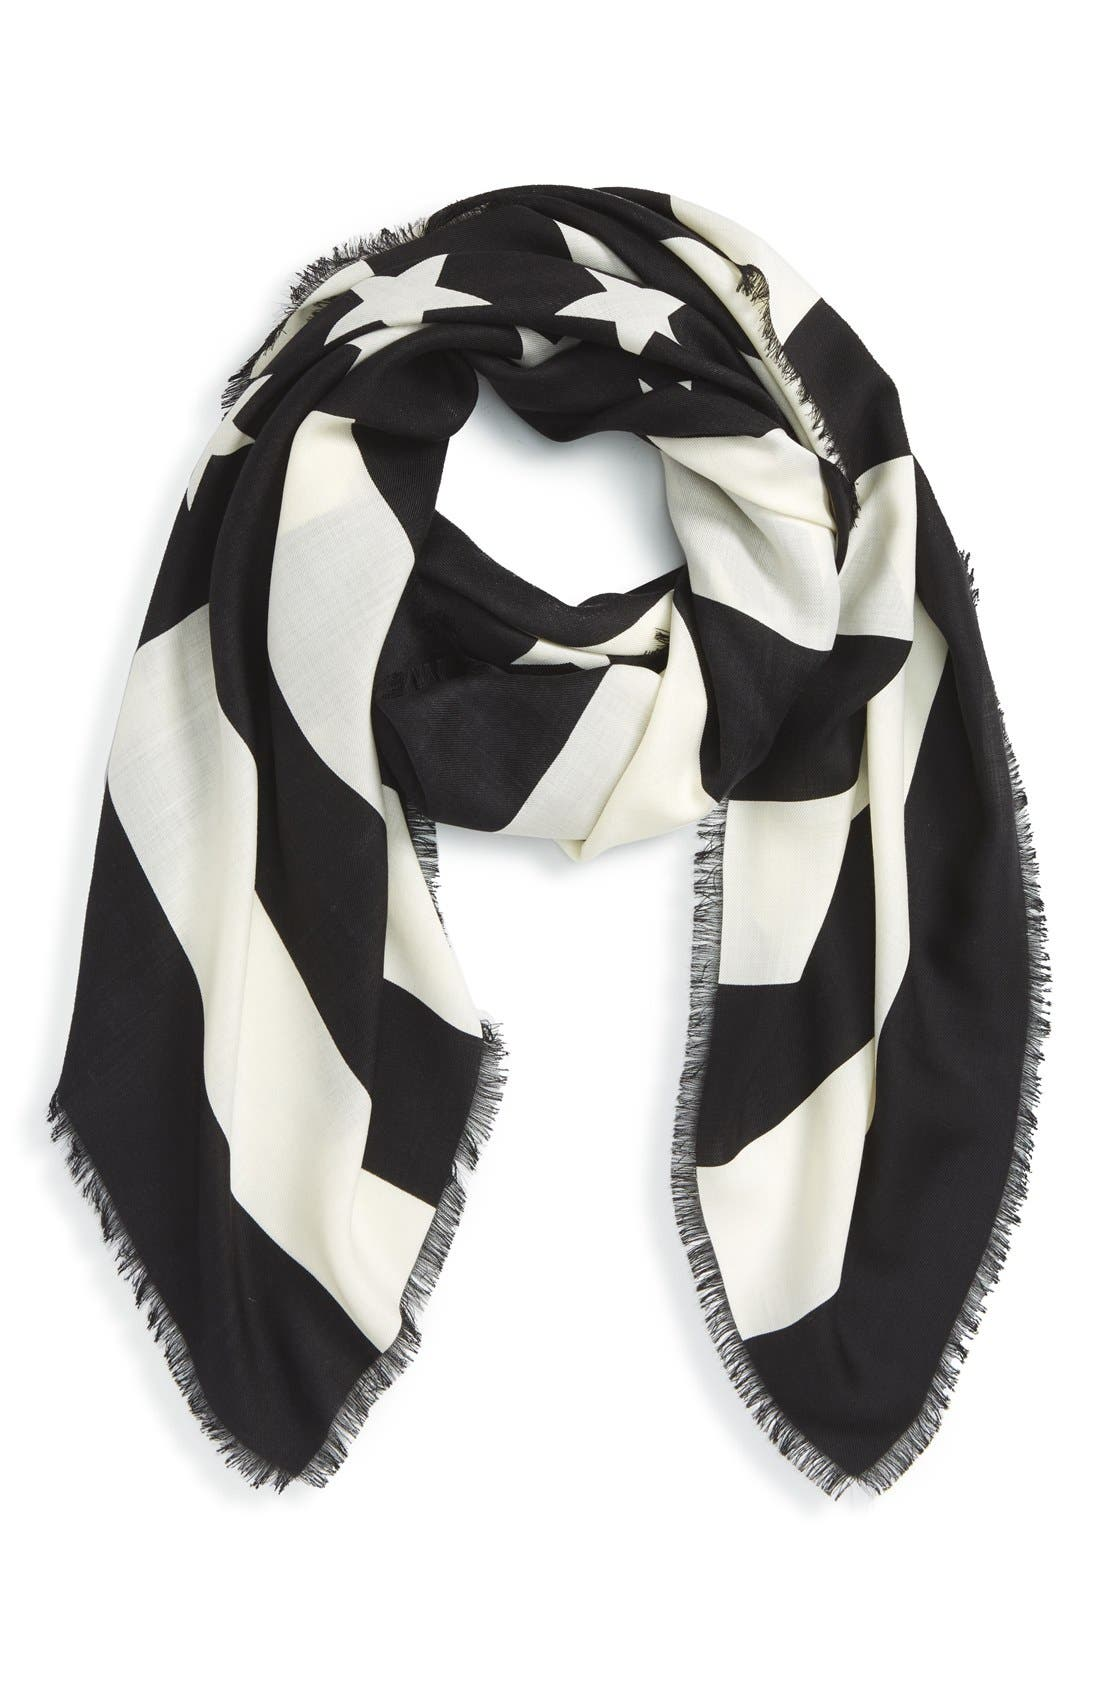 Alternate Image 1 Selected - Givenchy 'American Flag' Wool & Silk Scarf